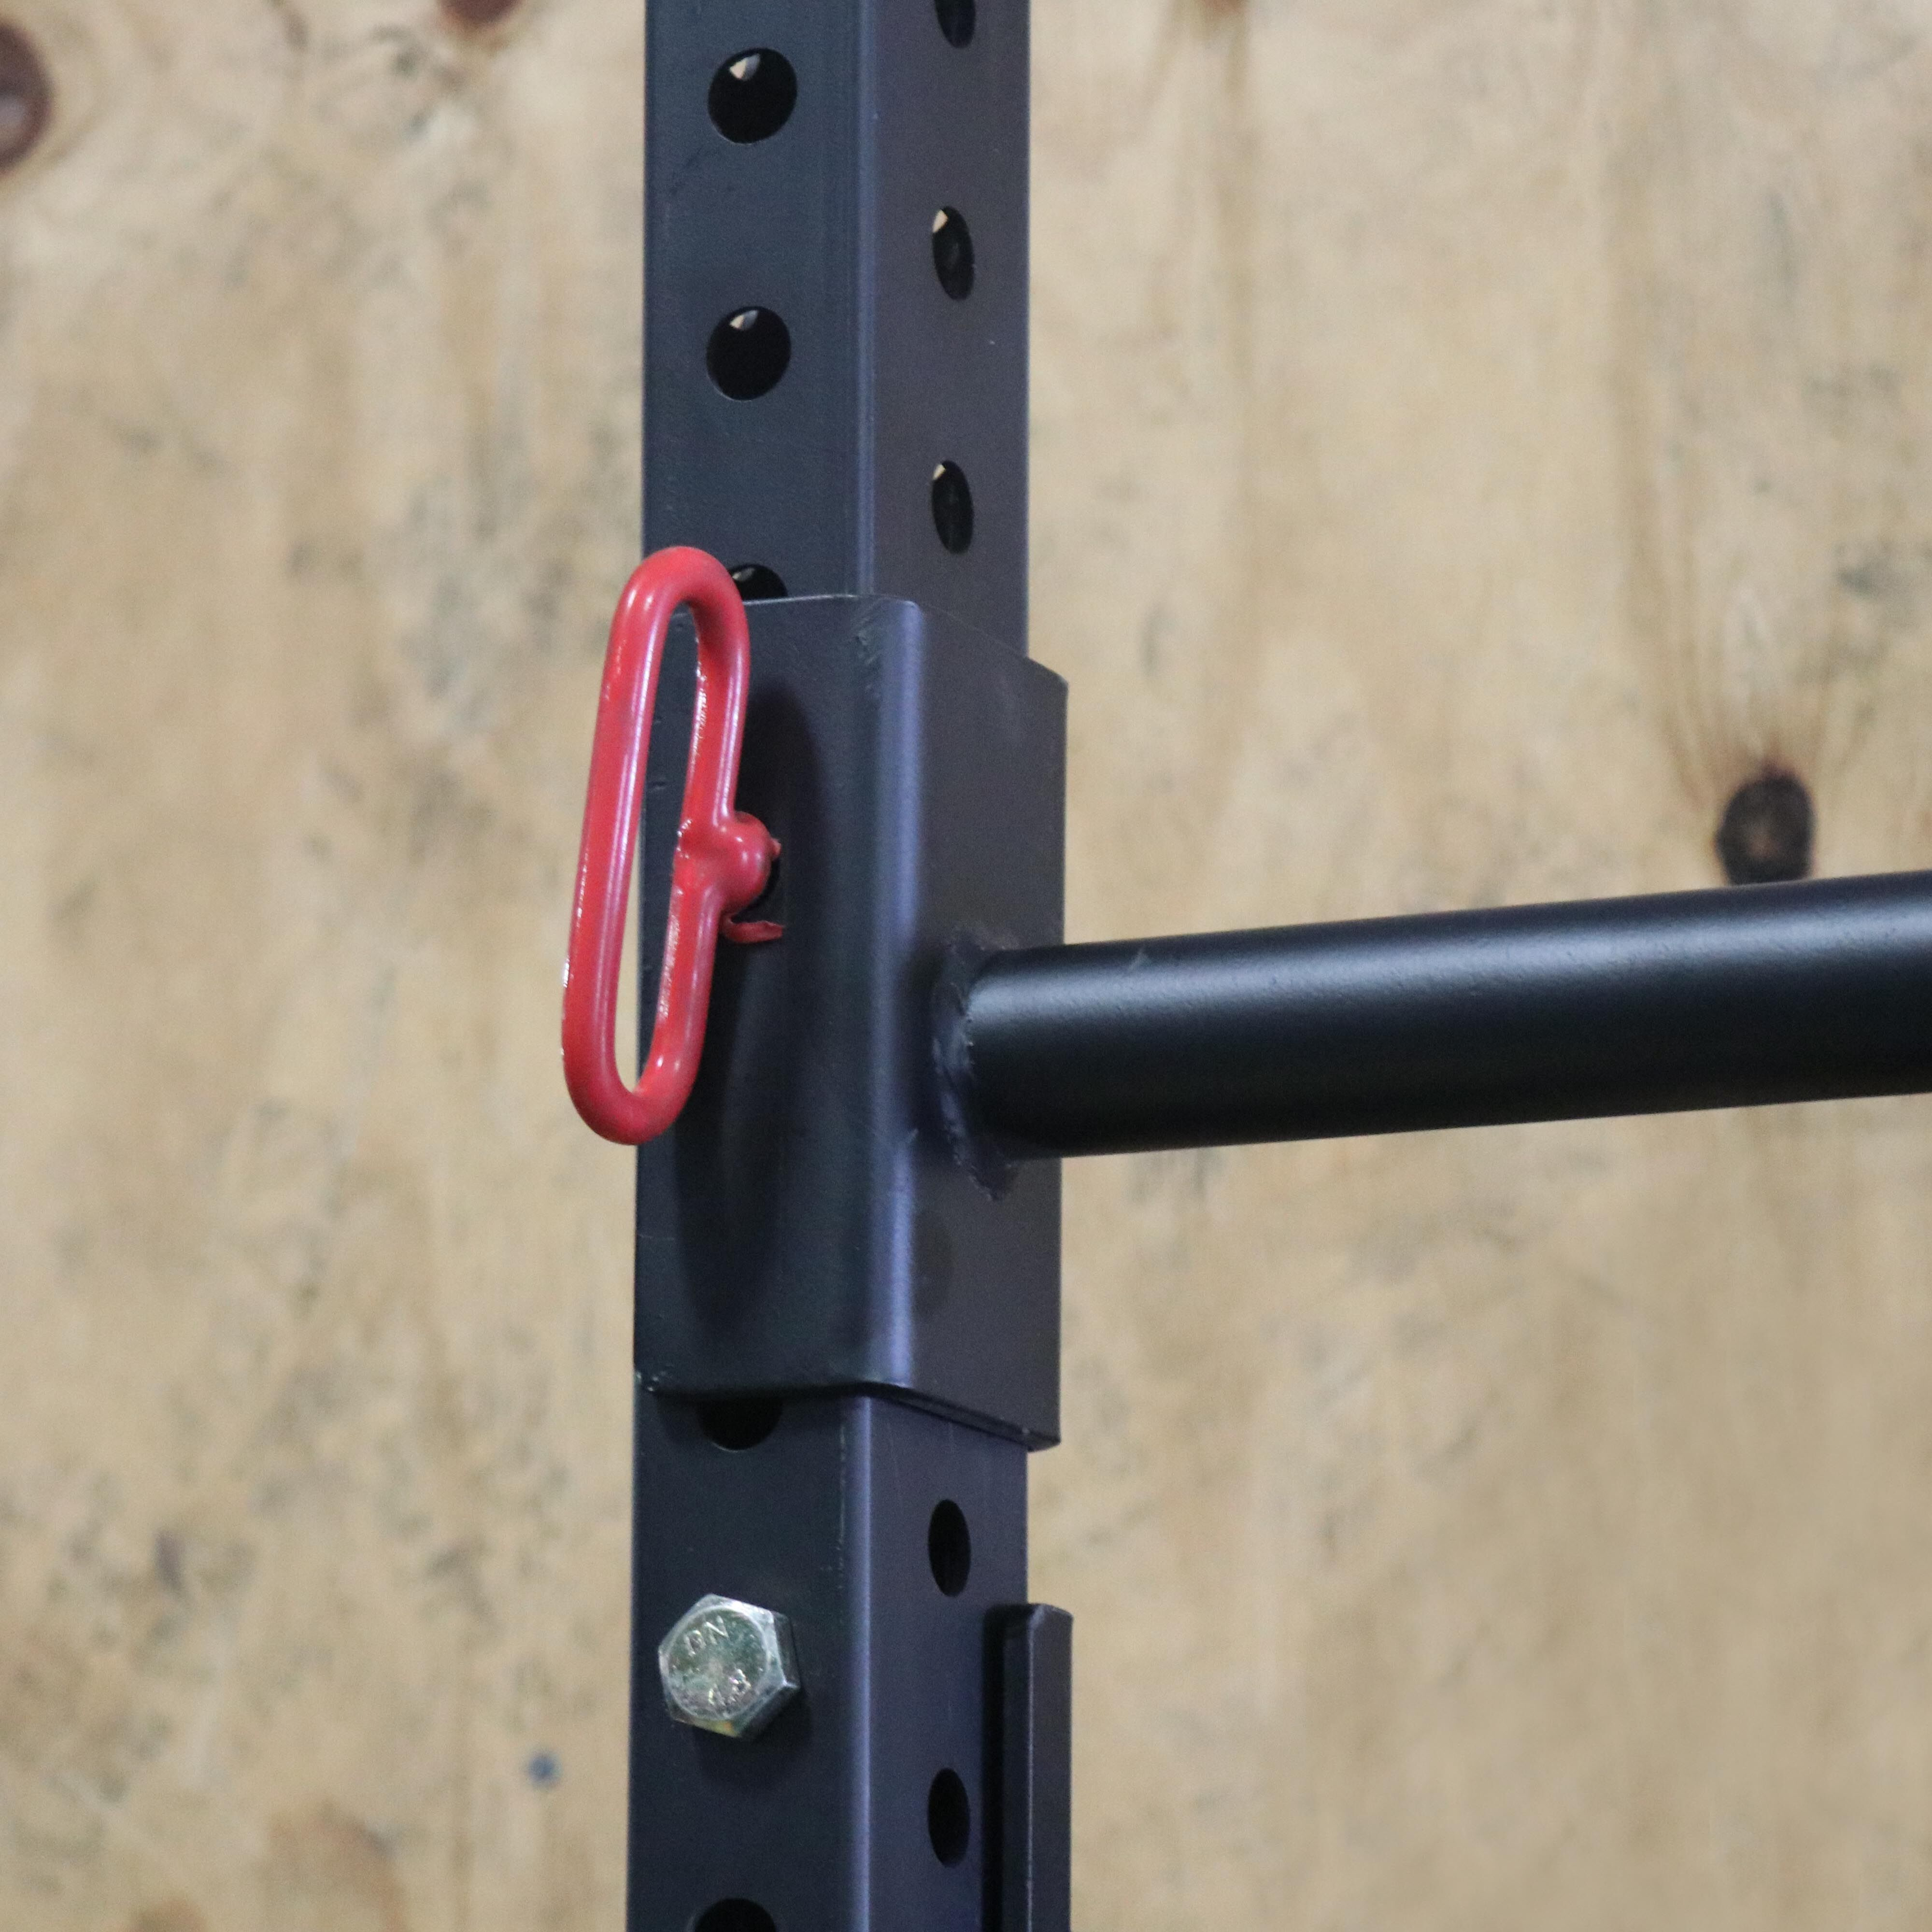 squats titan t 3 series tall folding power rack 21 5 depth for pull ups and power racks smith machines strength training